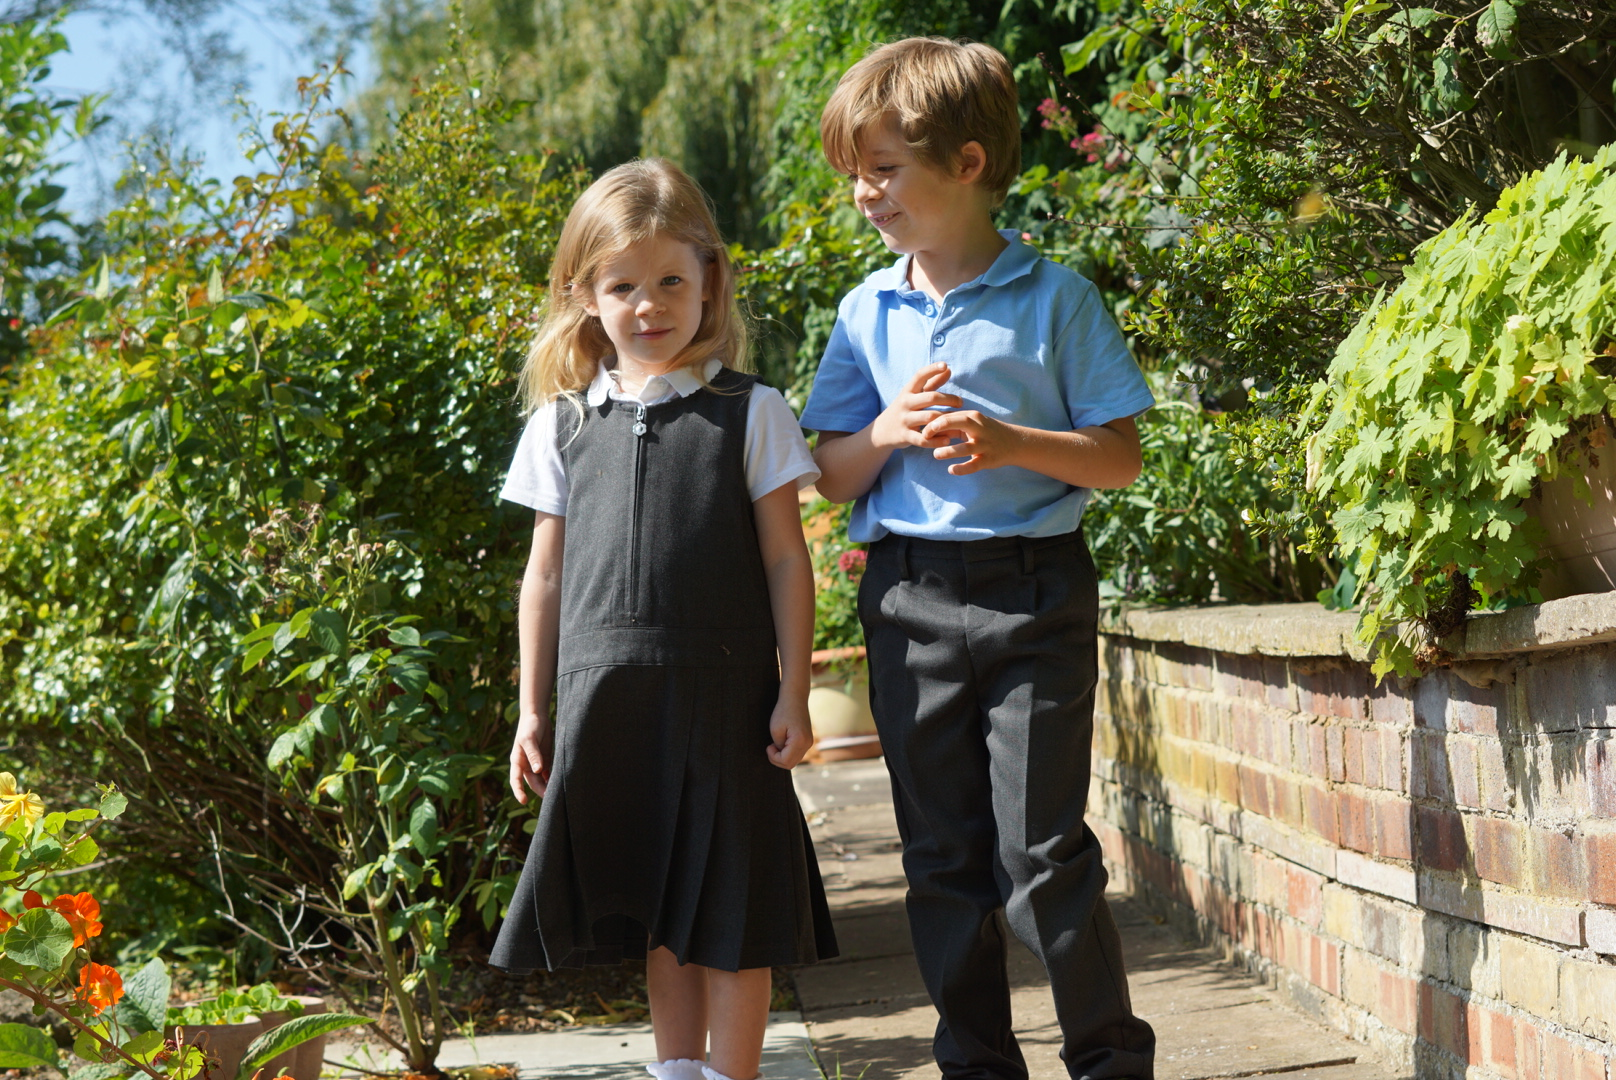 Getting school uniform ready with John Lewis